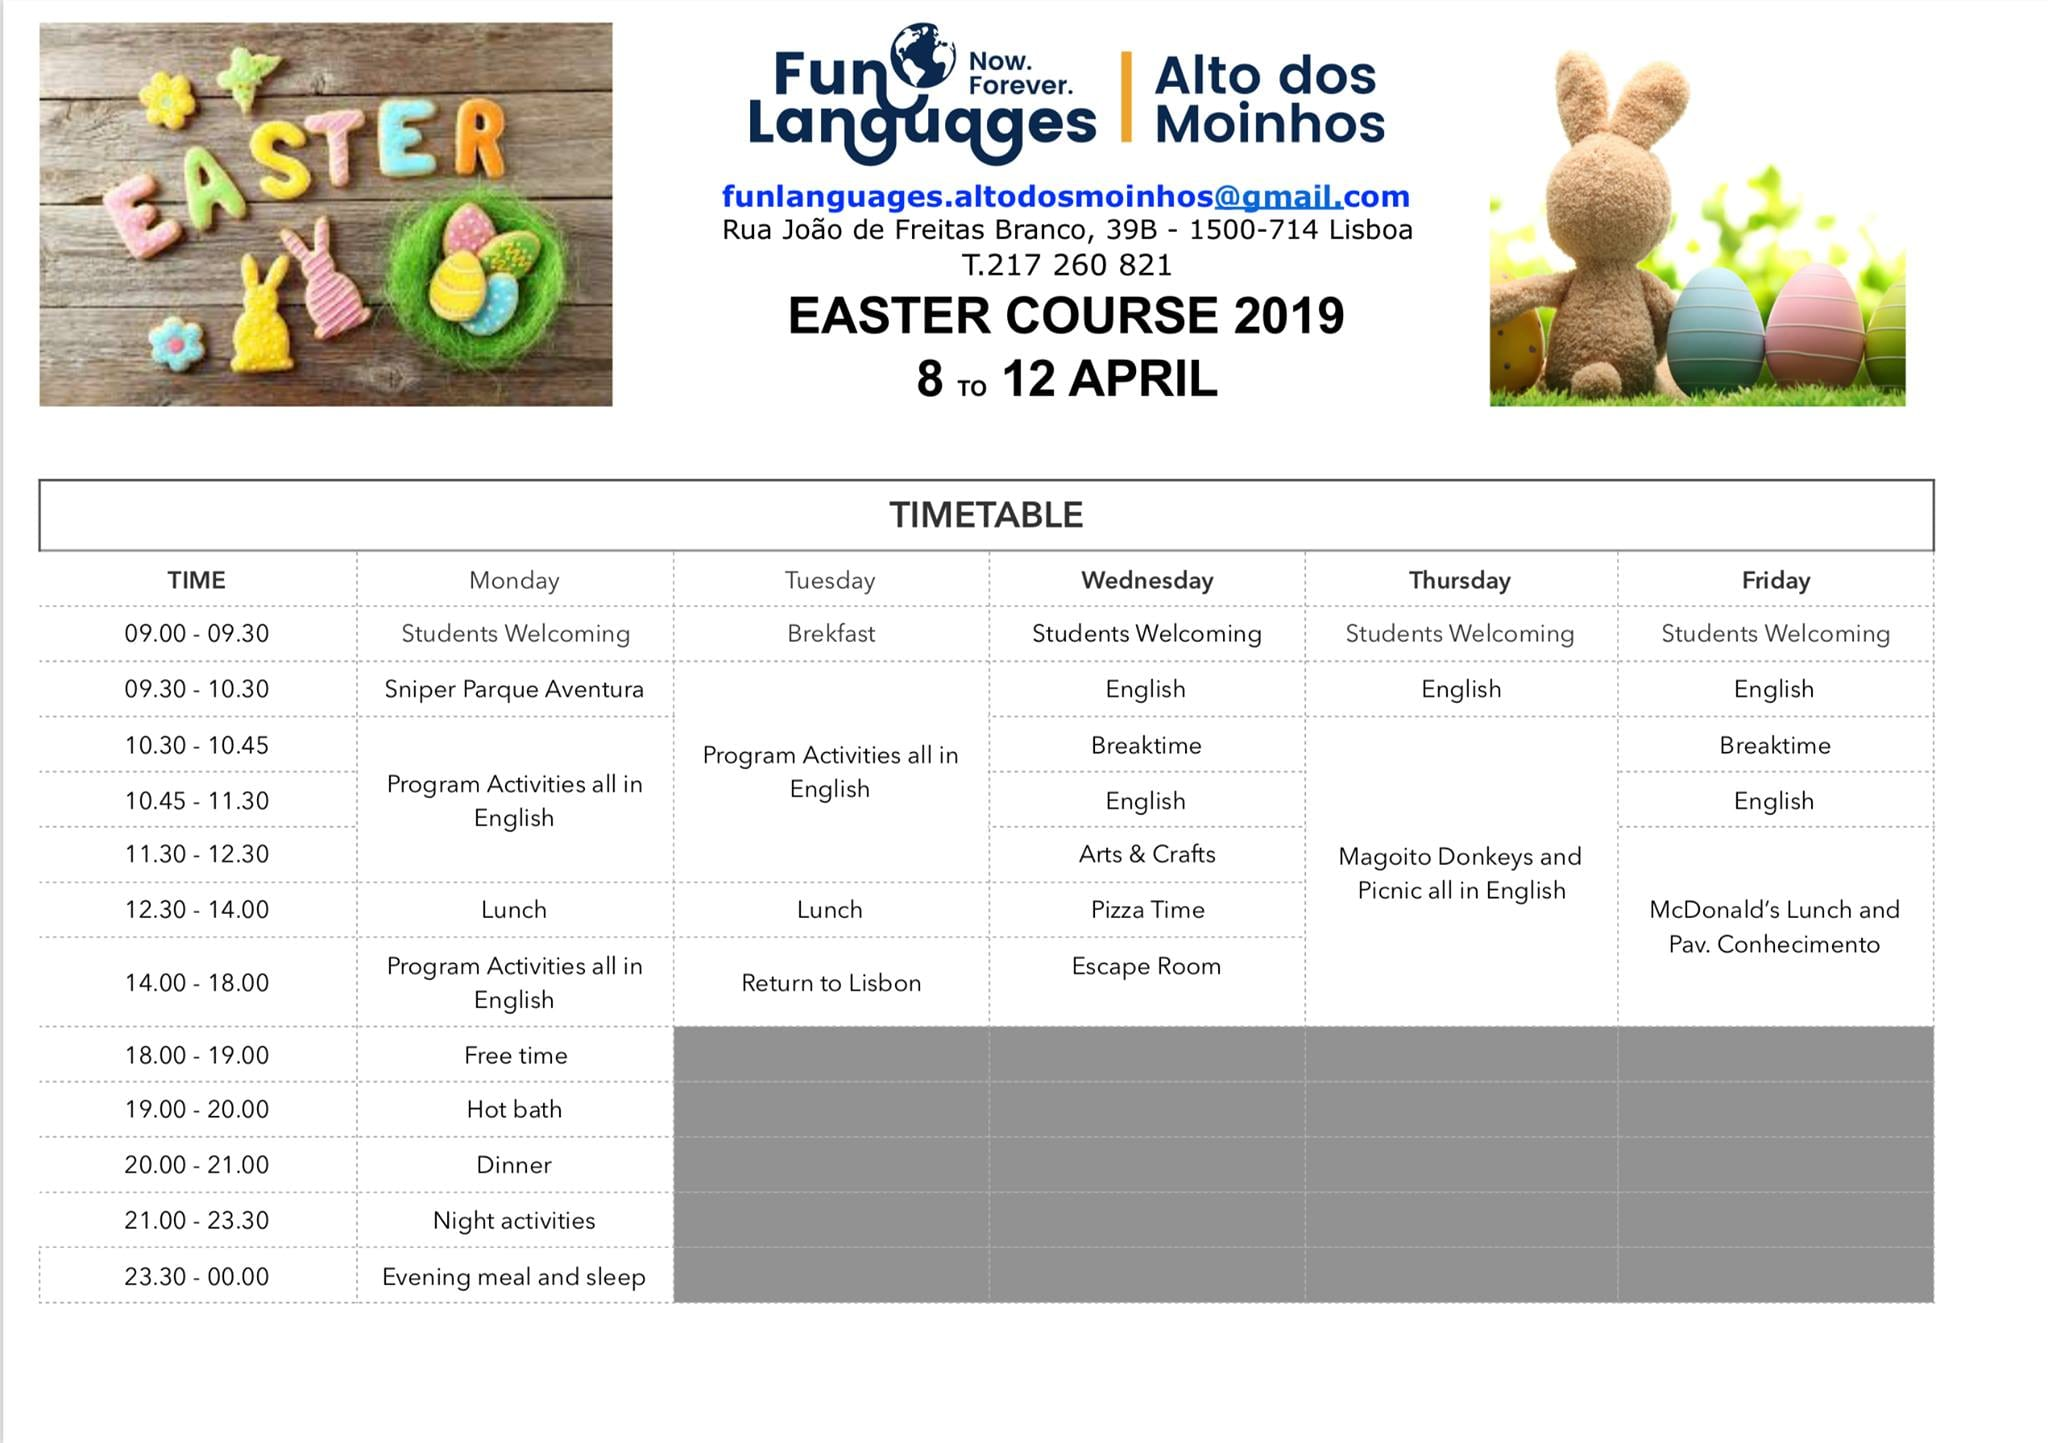 esater course